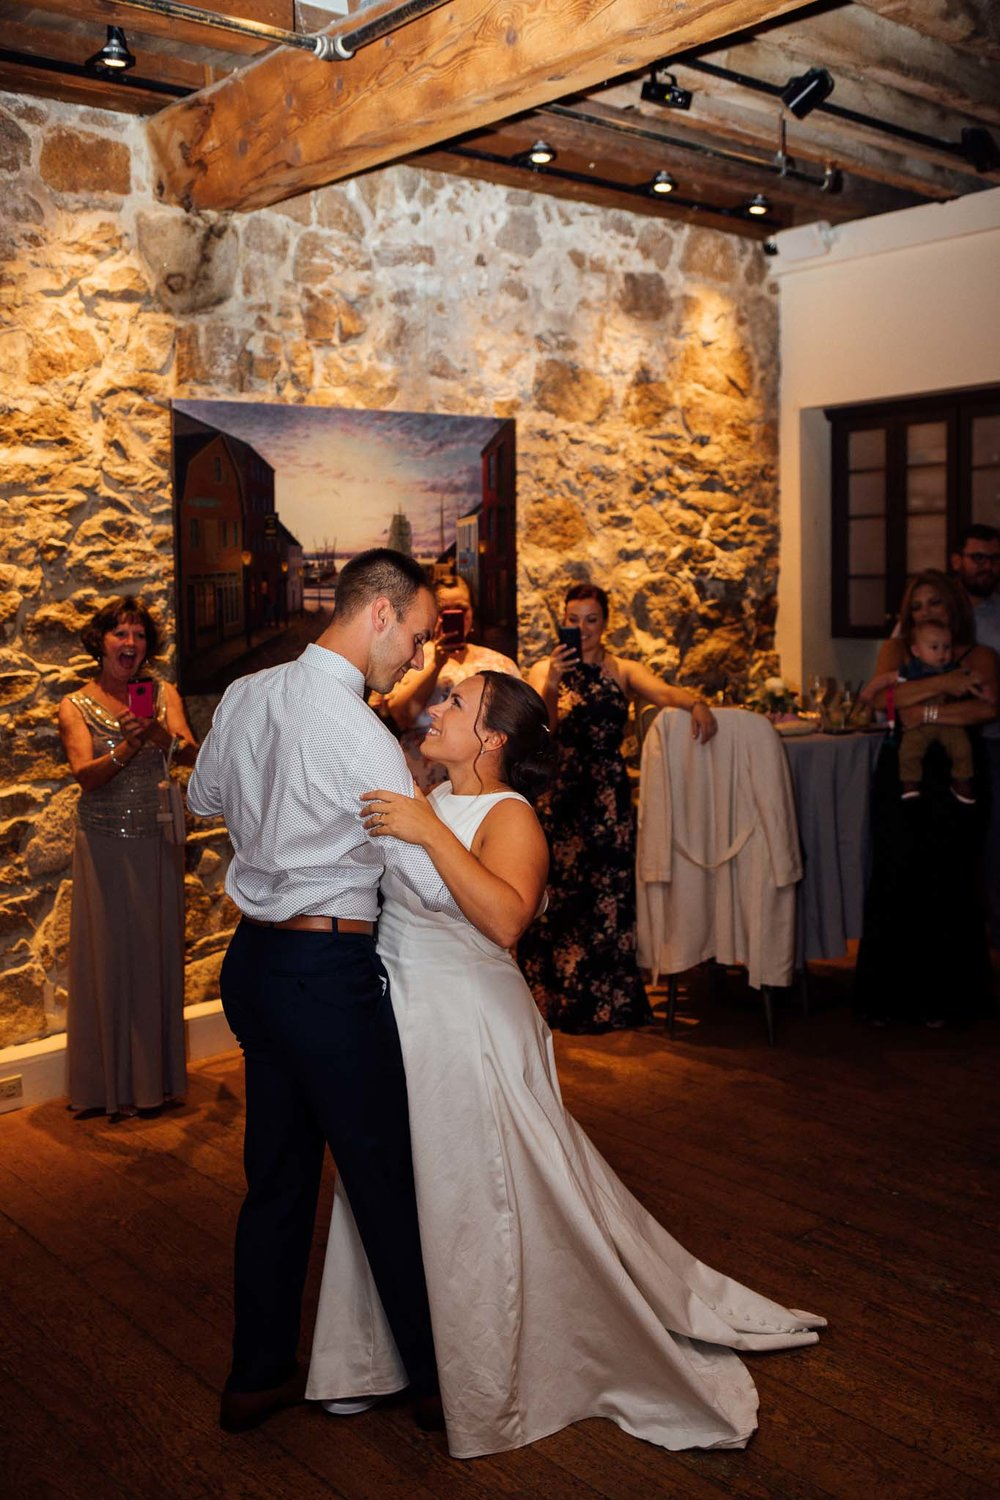 Bride and groom dance in historic building during their wedding reception in New Bedford Massachusetts